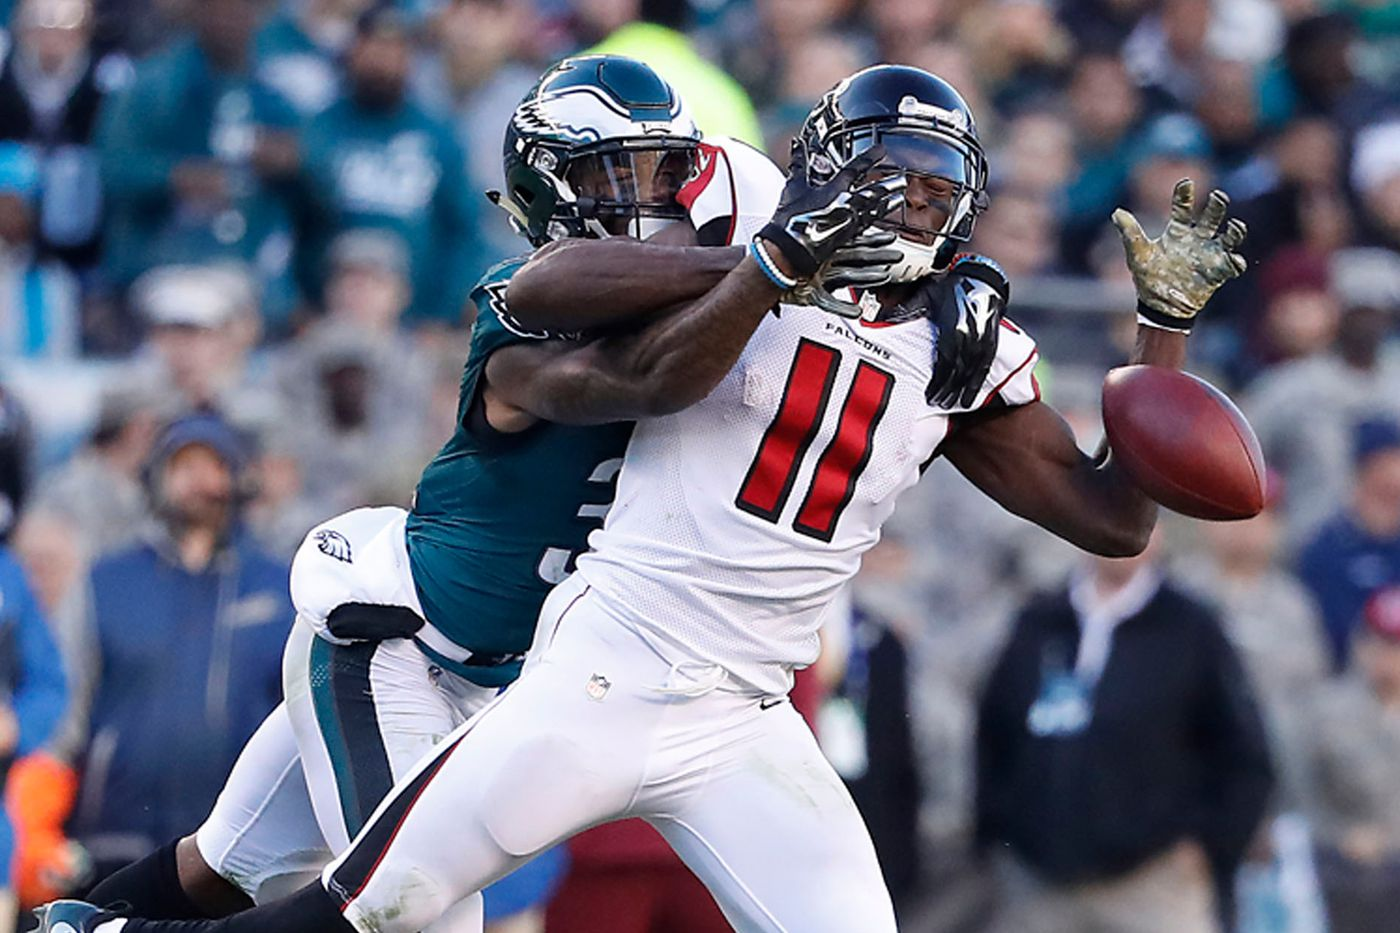 brand new 8d5ba ed027 Eagles cornerback Jalen Mills opens up about his foot injury ...